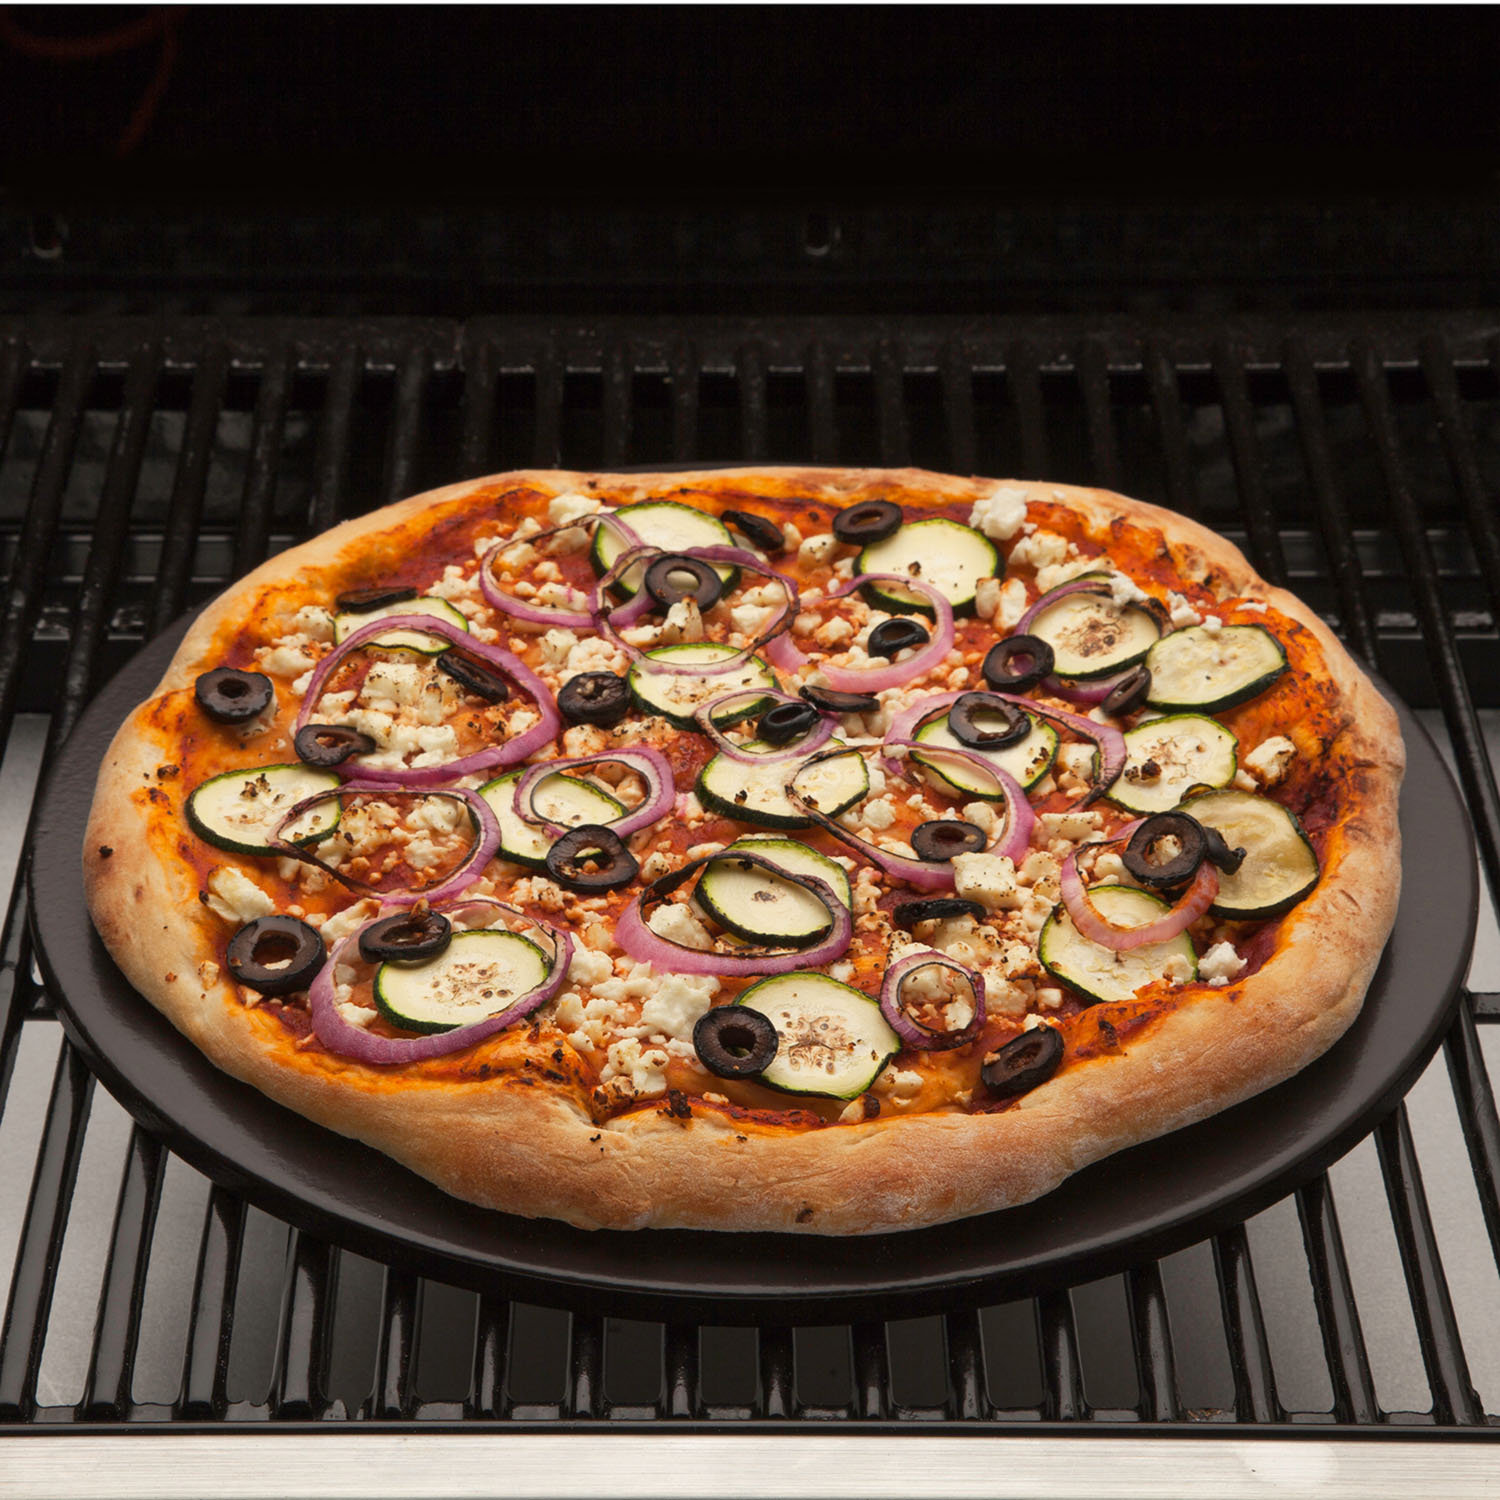 Ceramic Stones For Bbq : Cuisinart alfrescamore ceramic glazed cordierite pizza